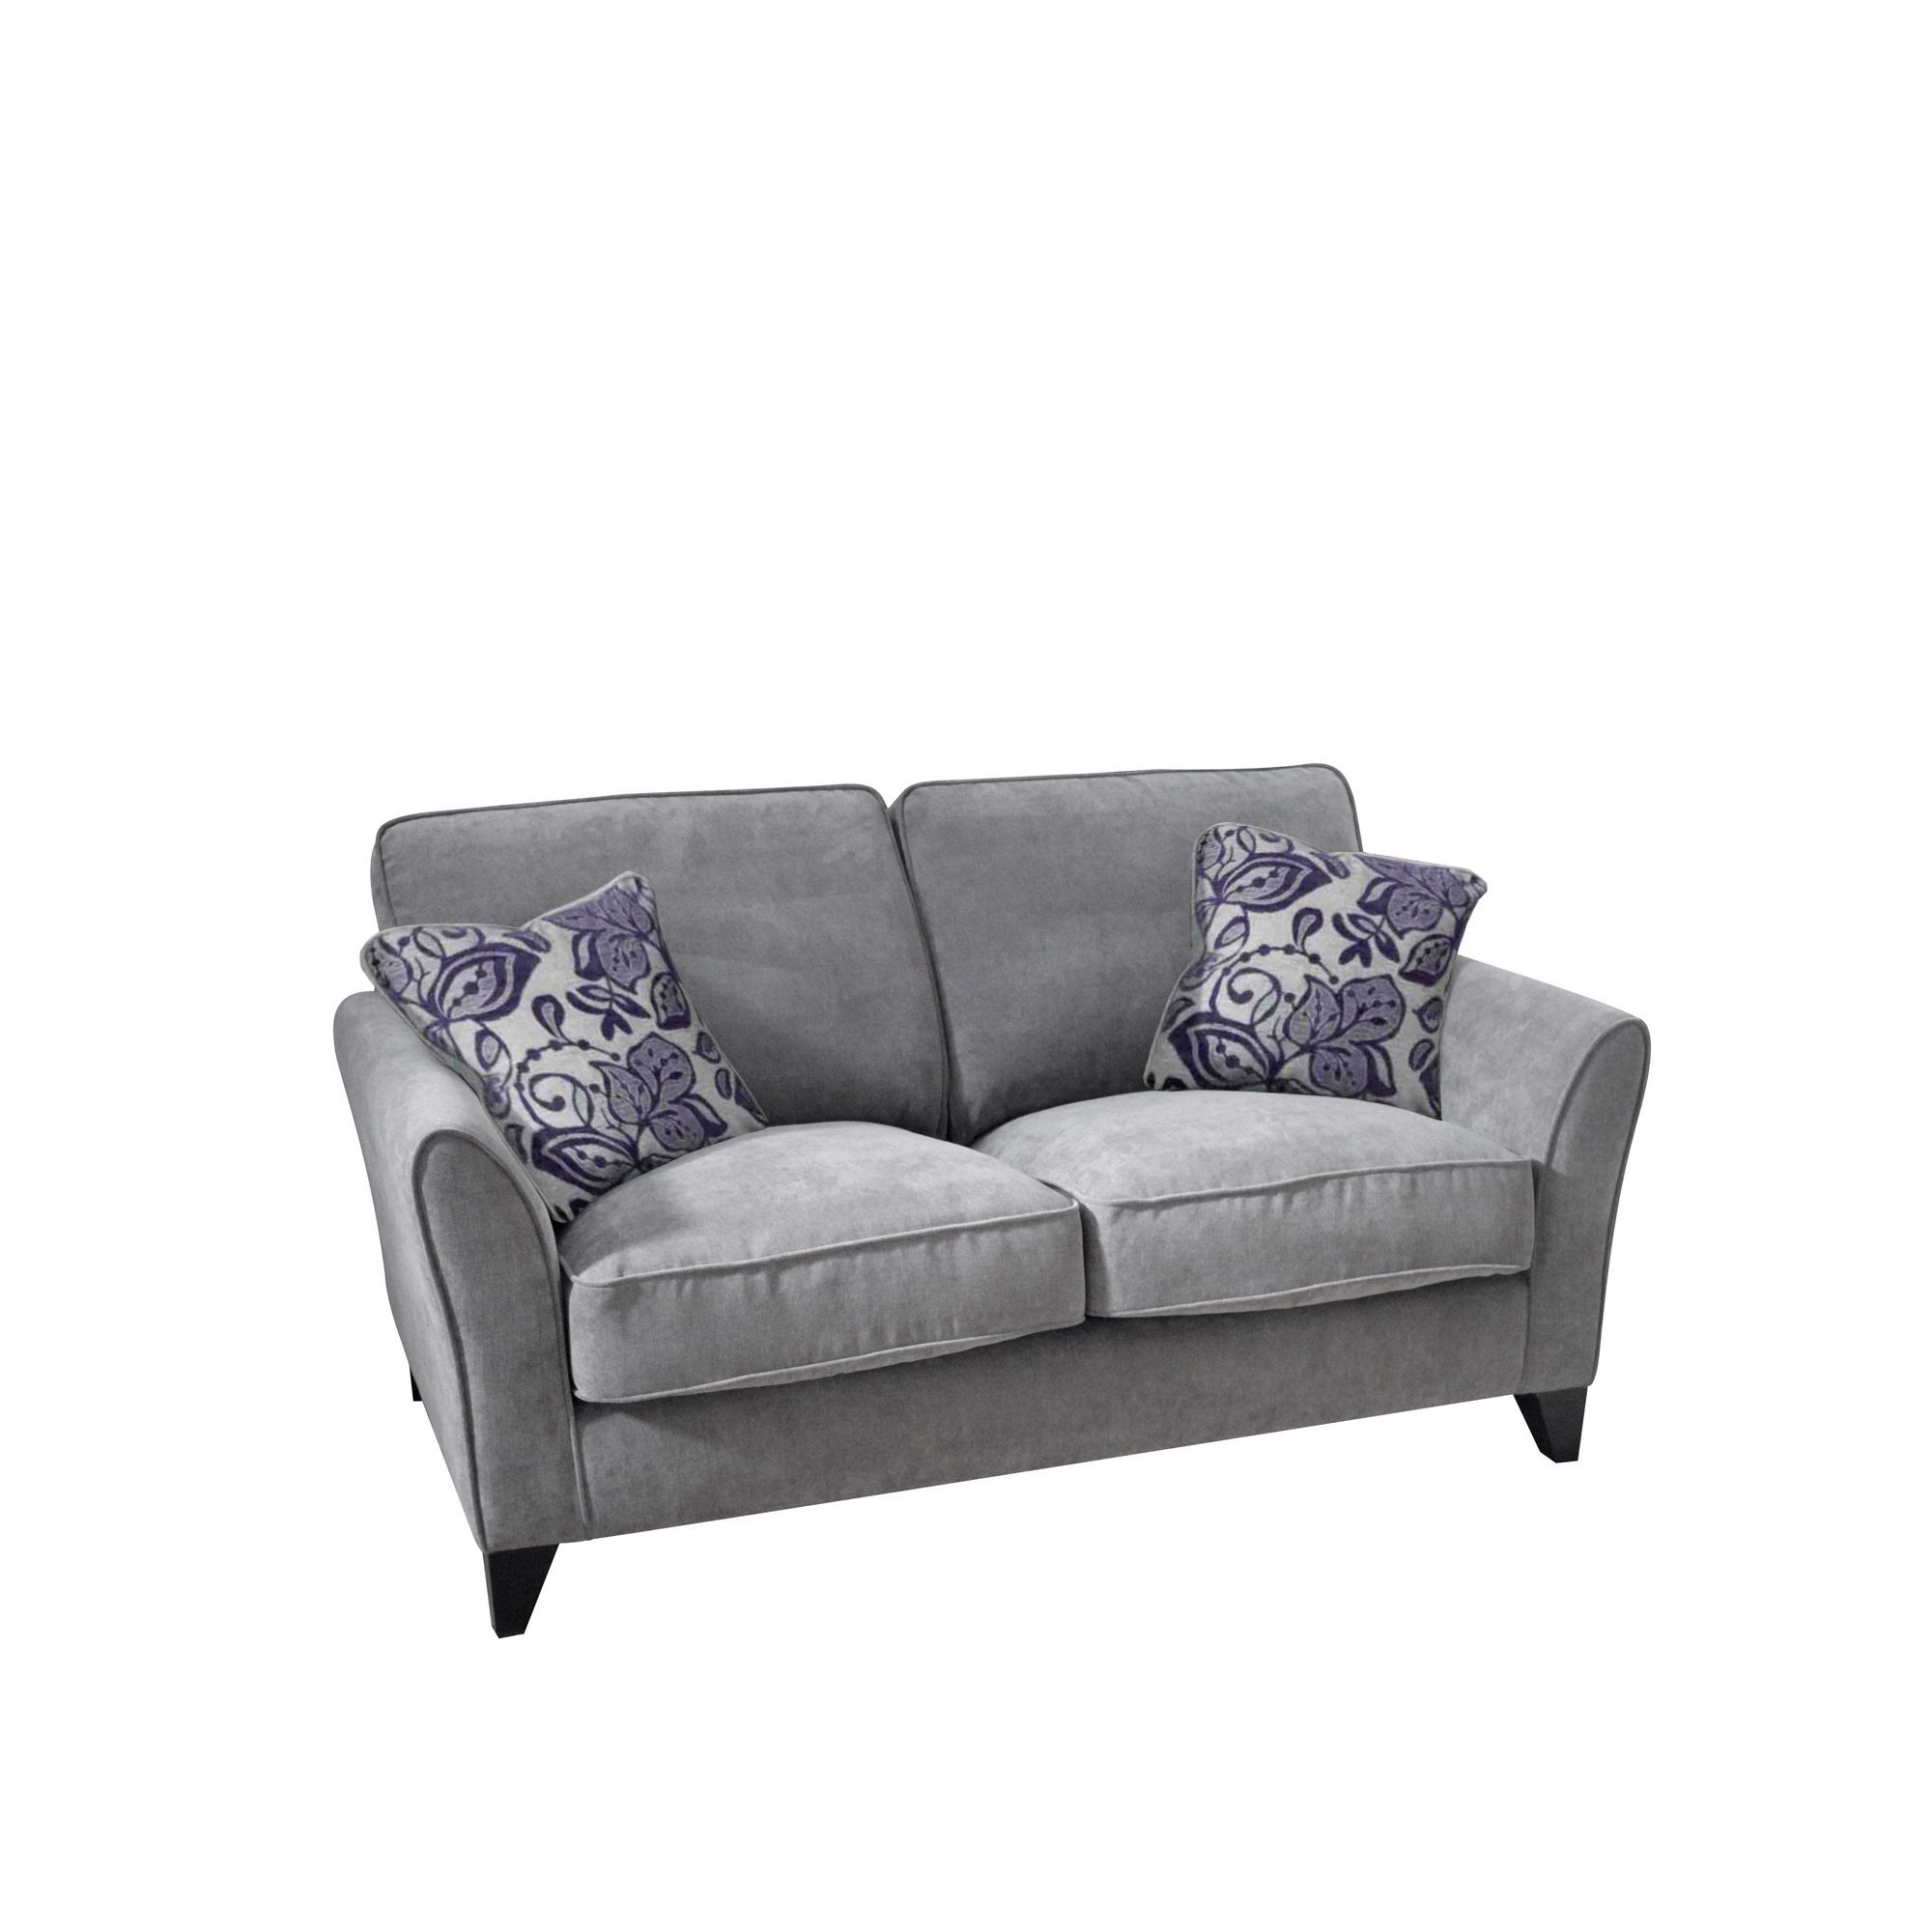 Cookes Collection Lakeland 2 Seater Sofa All Sofas Cookes